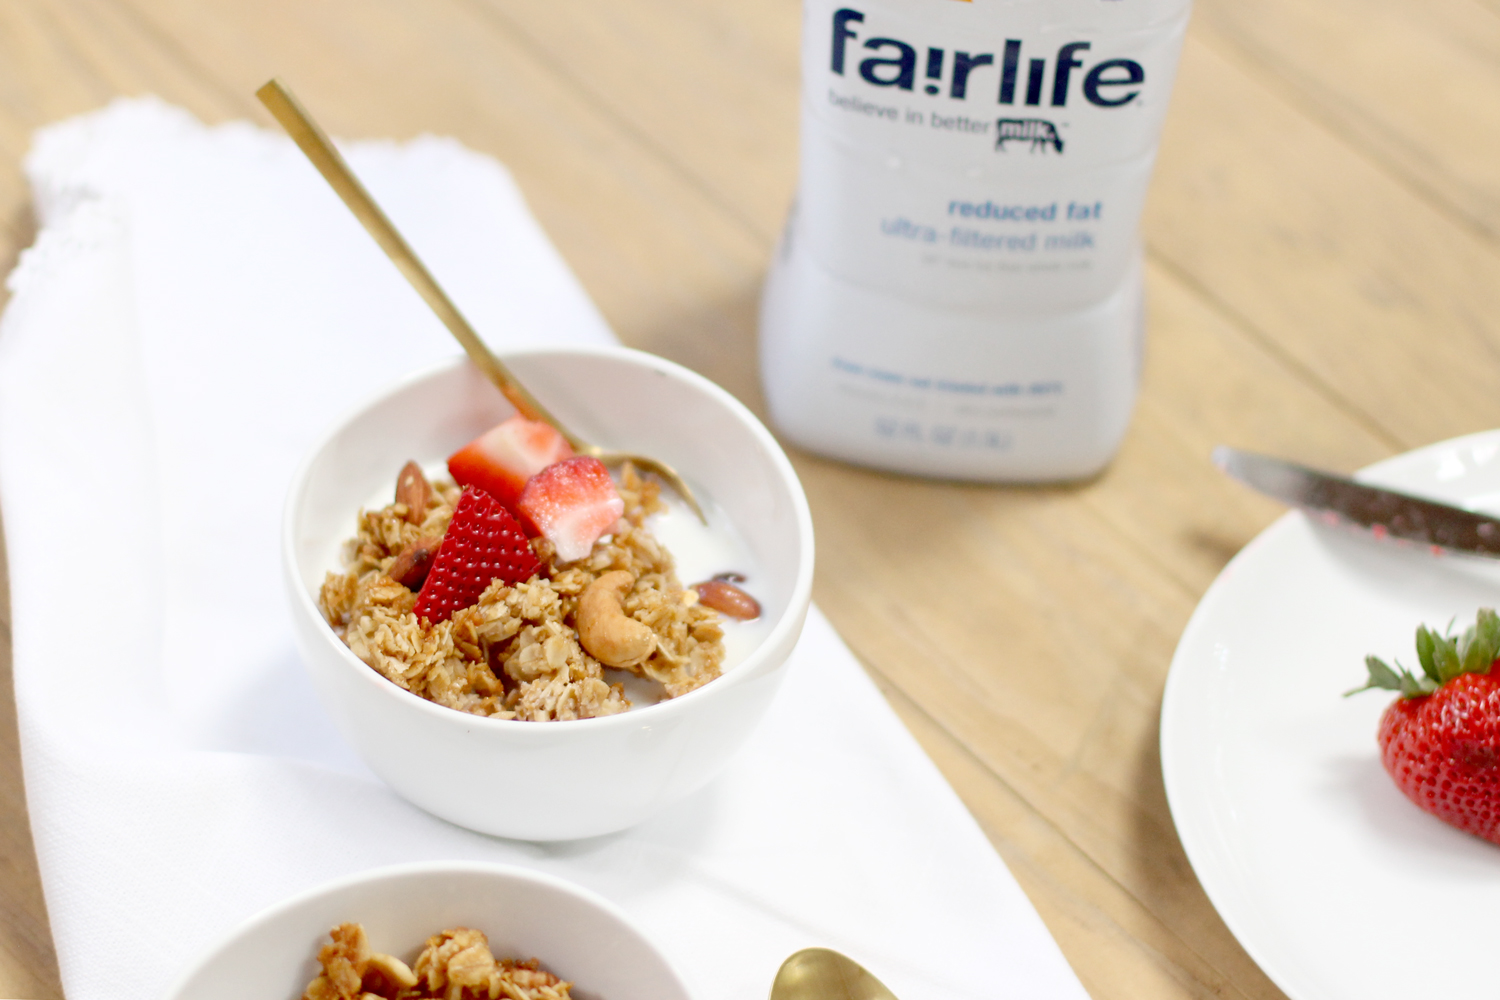 How-to-Make-Classic-Nutty-Clumpy-Classic-Granola-and-Fairlife-Milk---Strawberries---glitterinc.com